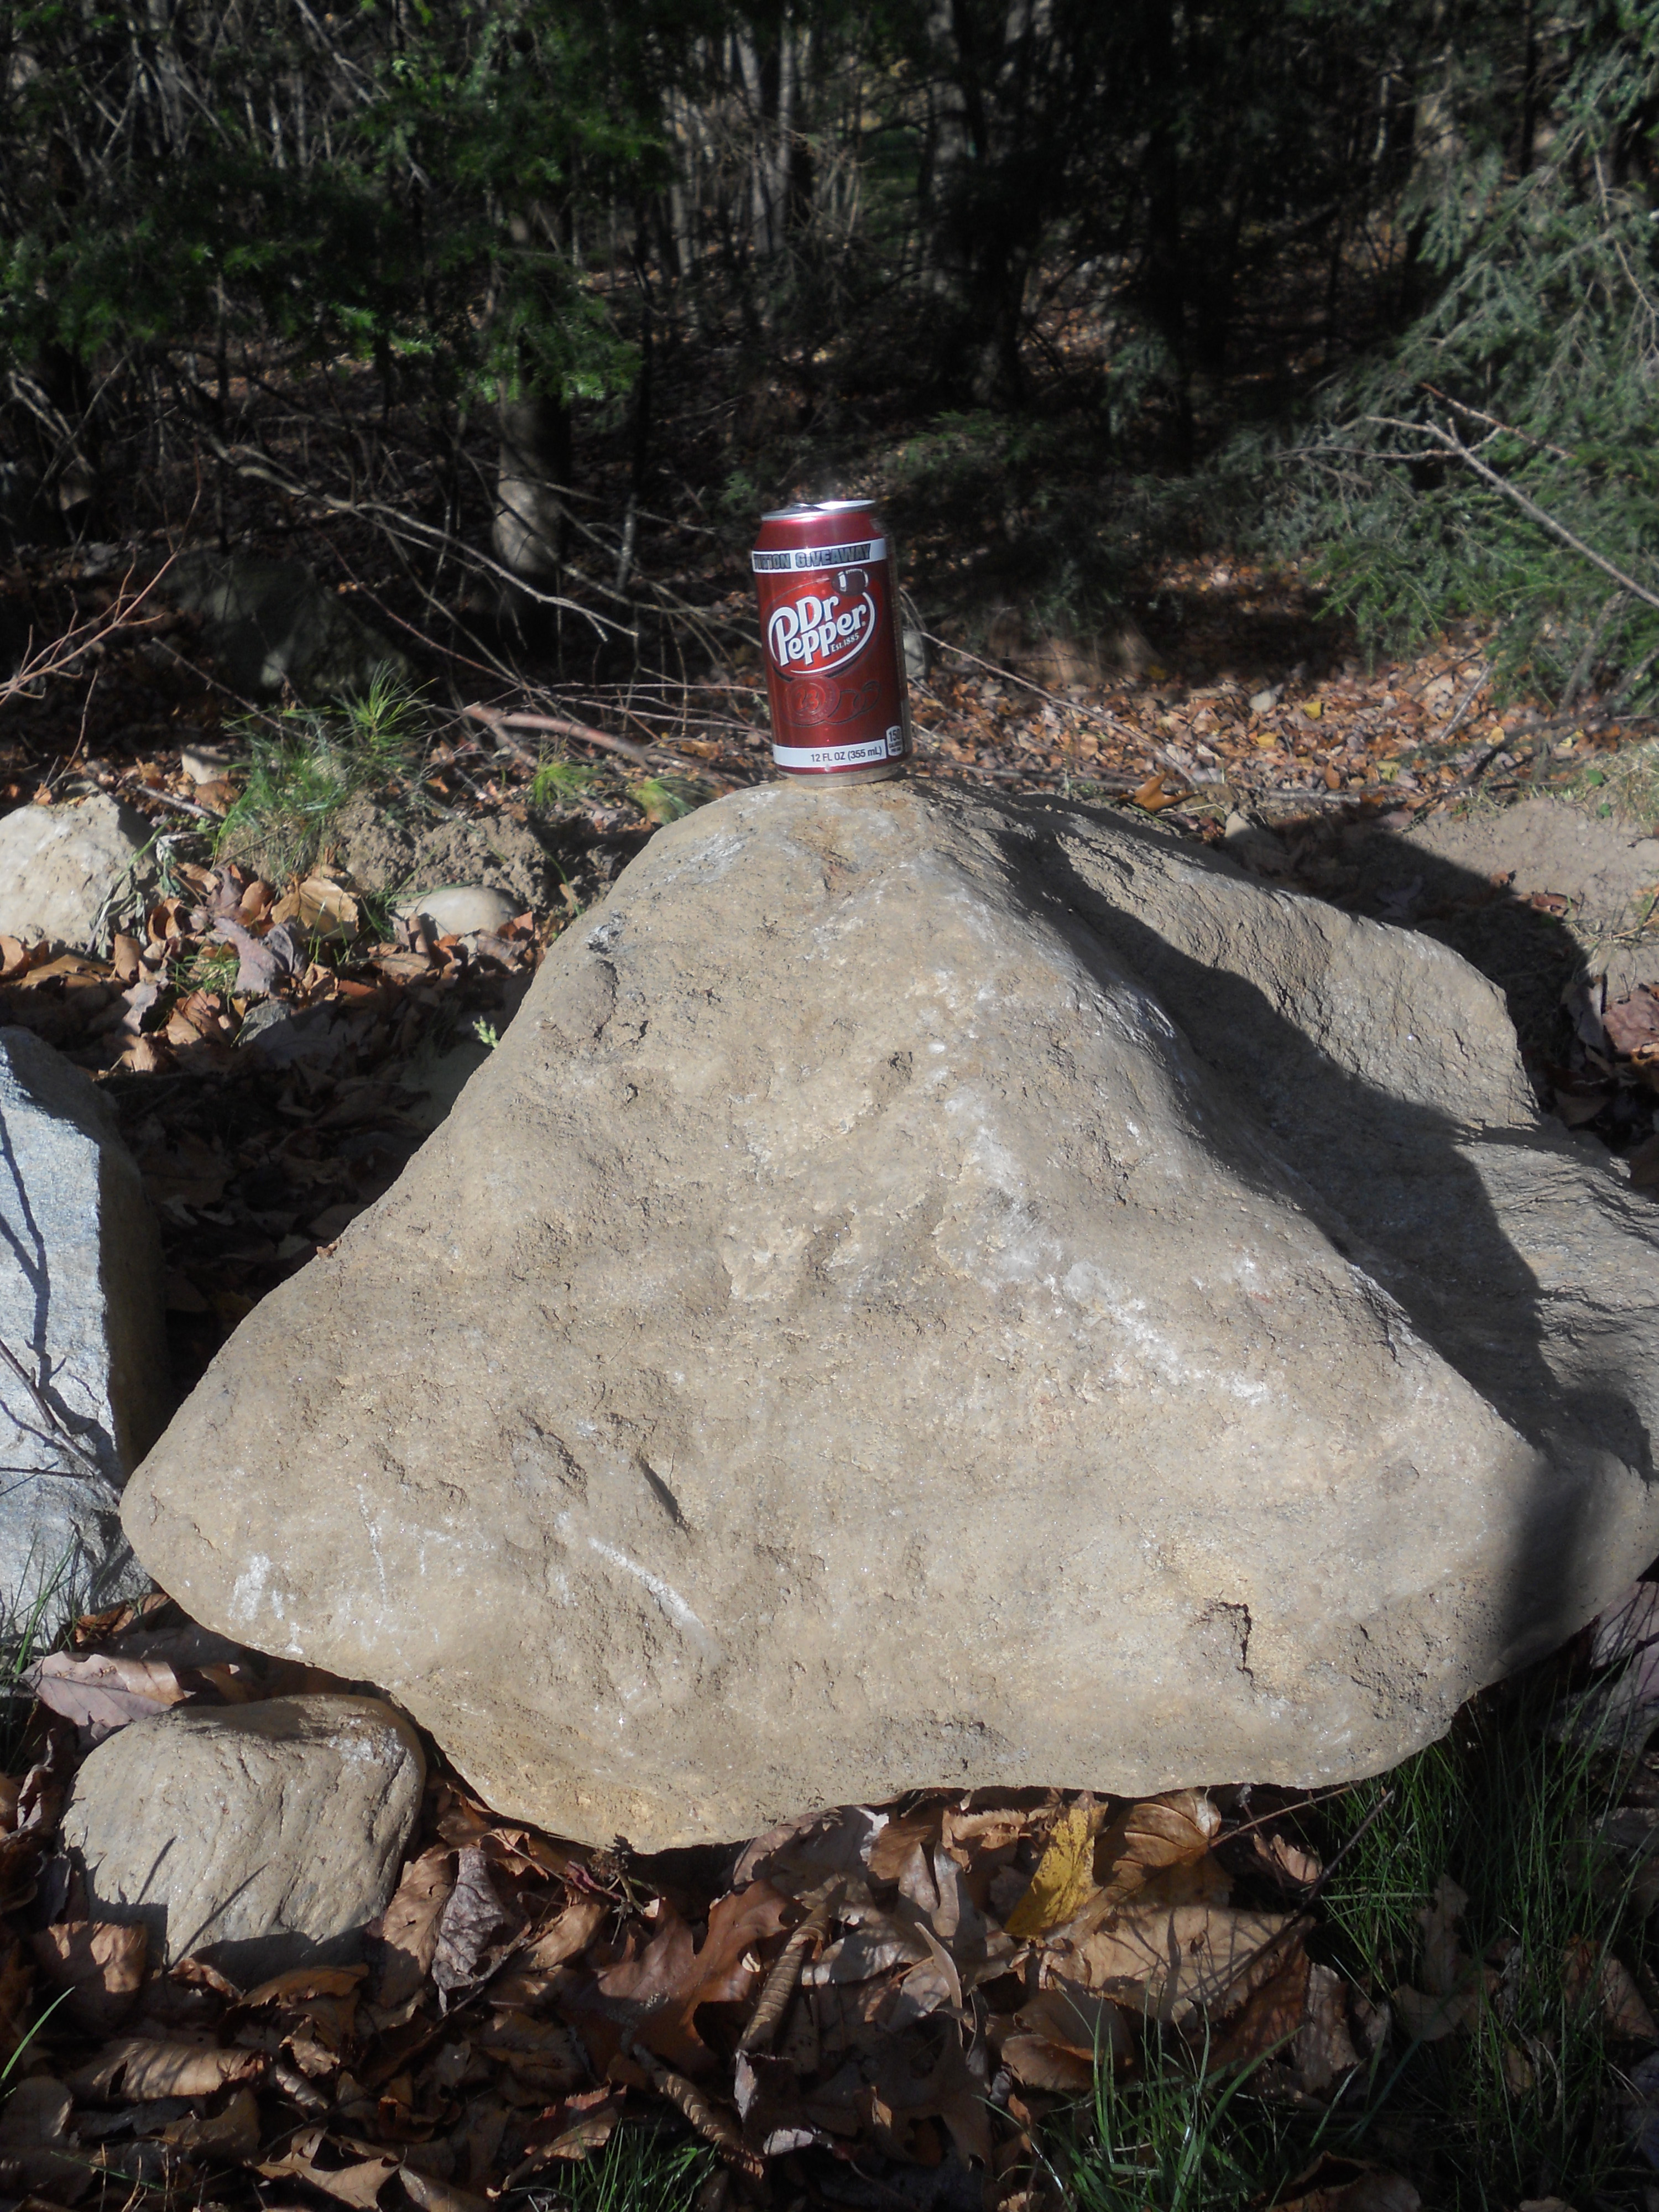 The biggest of the rocks that was unearthed during the sweet potato harvest. The Dr. Pepper can is there to give perspective on the massive size of the rock!